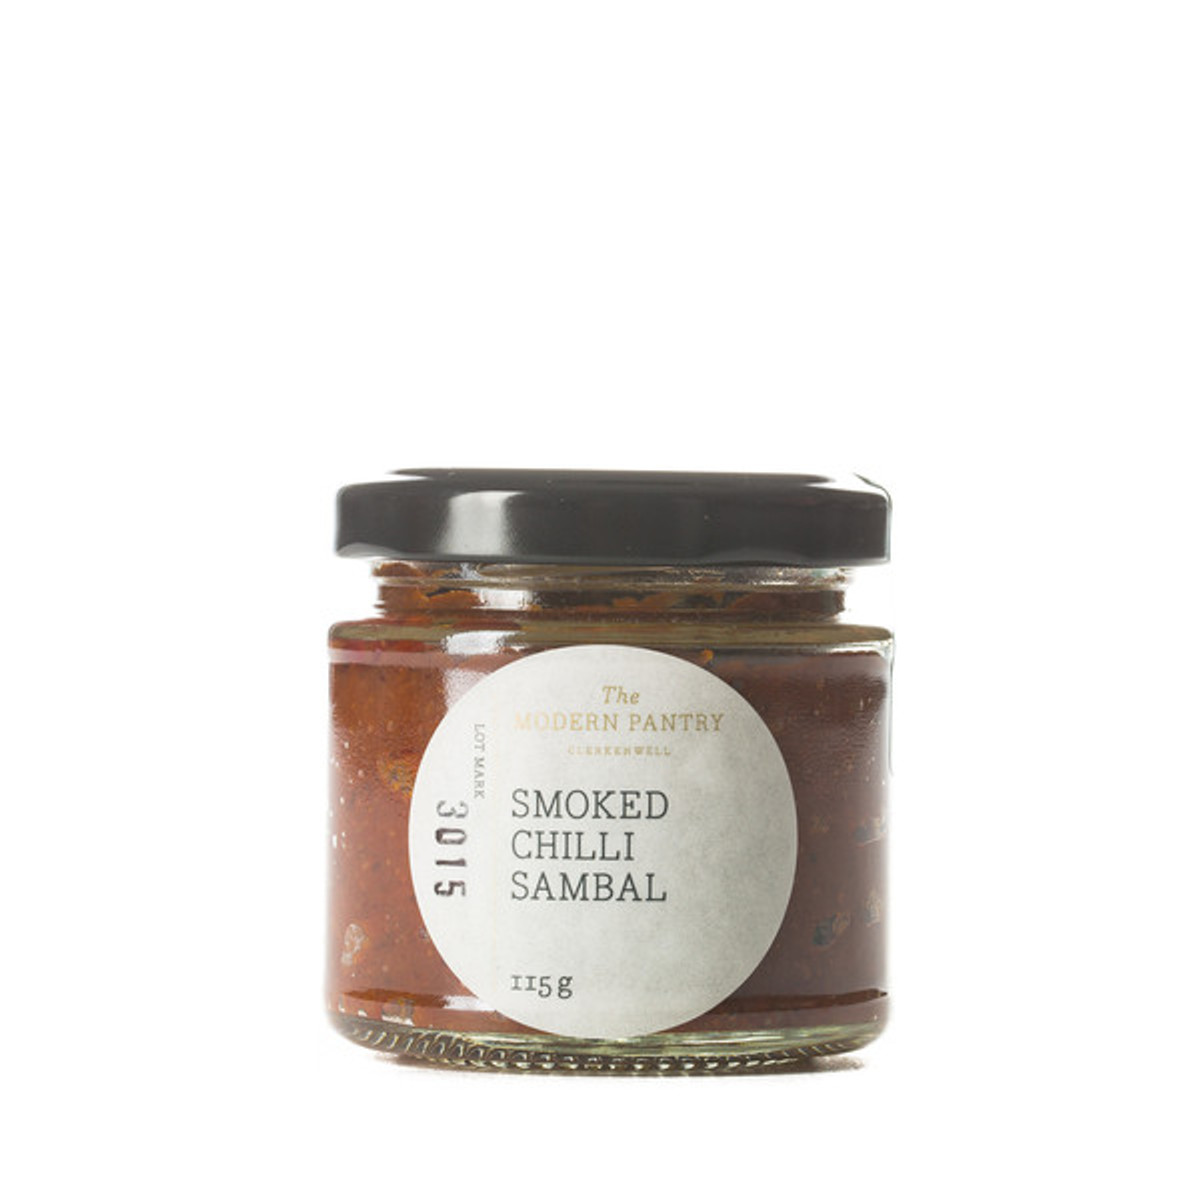 Smoked Chilli Sambal